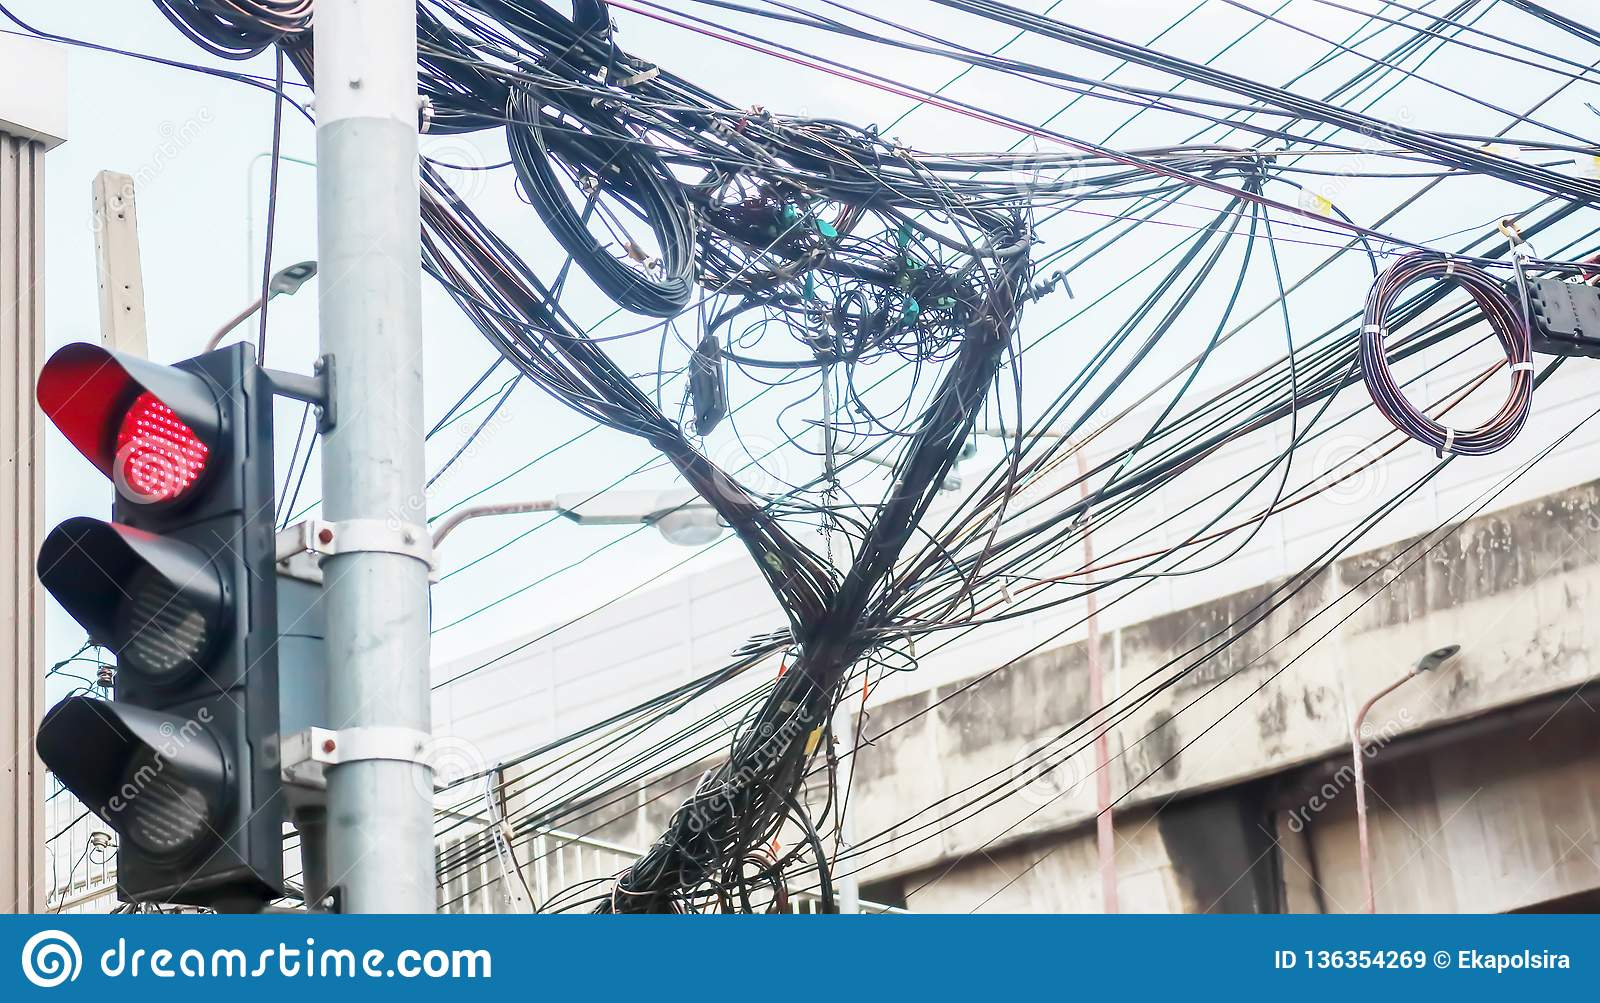 hight resolution of closeup on communication wire and internet junction telephone wire and electricity power line messy intersection with traffic light in bangkok thailand